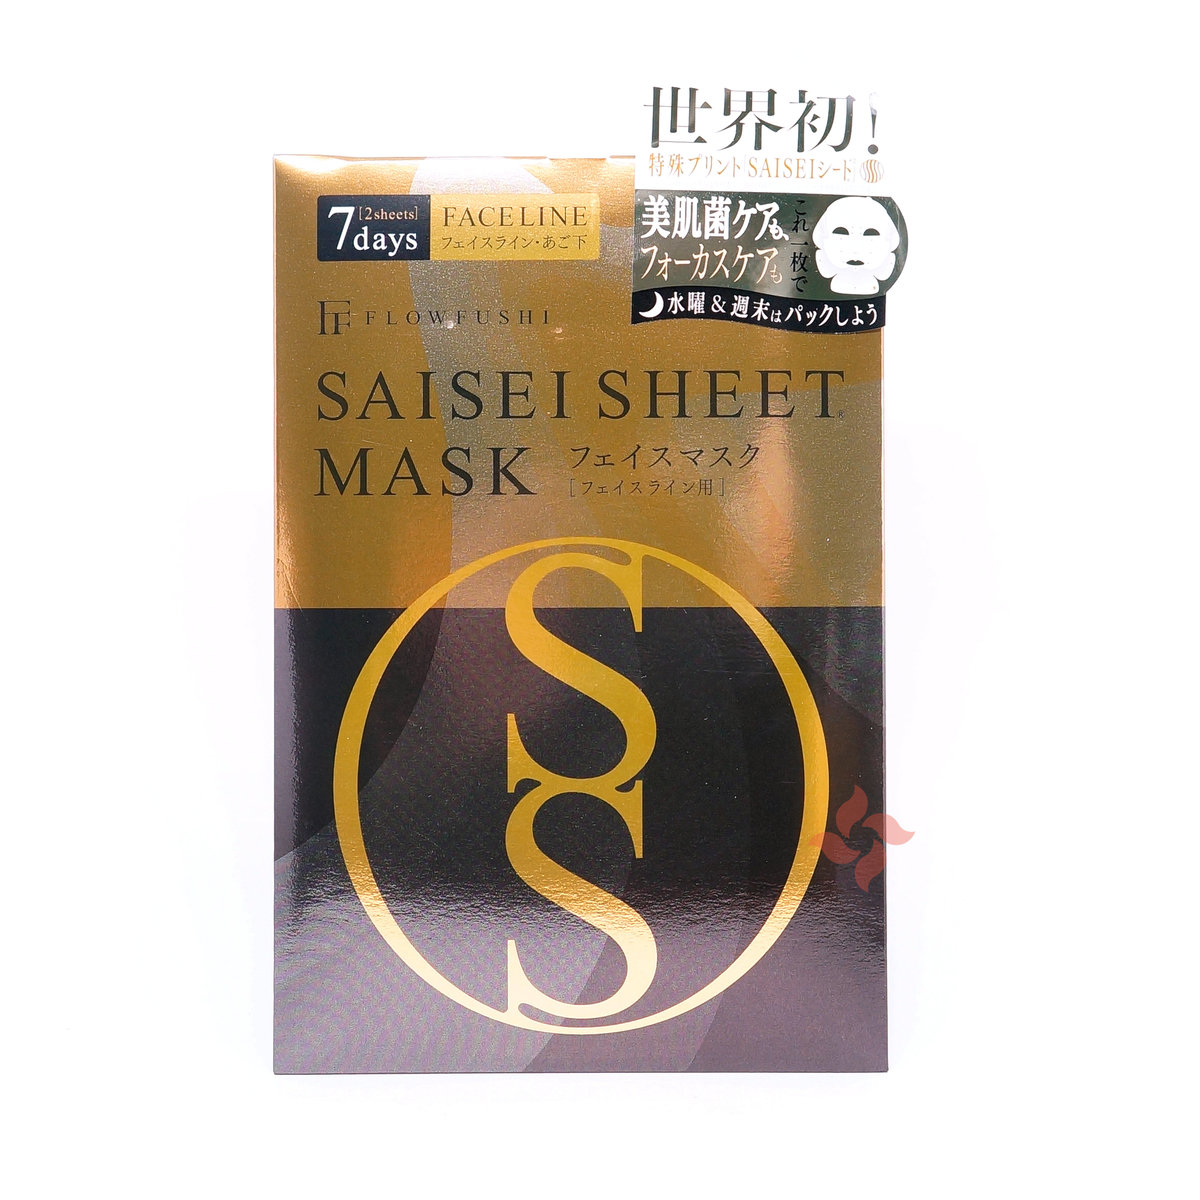 SAISEI Sheet Mask (For Face Line) 2pcs (4571194363500)